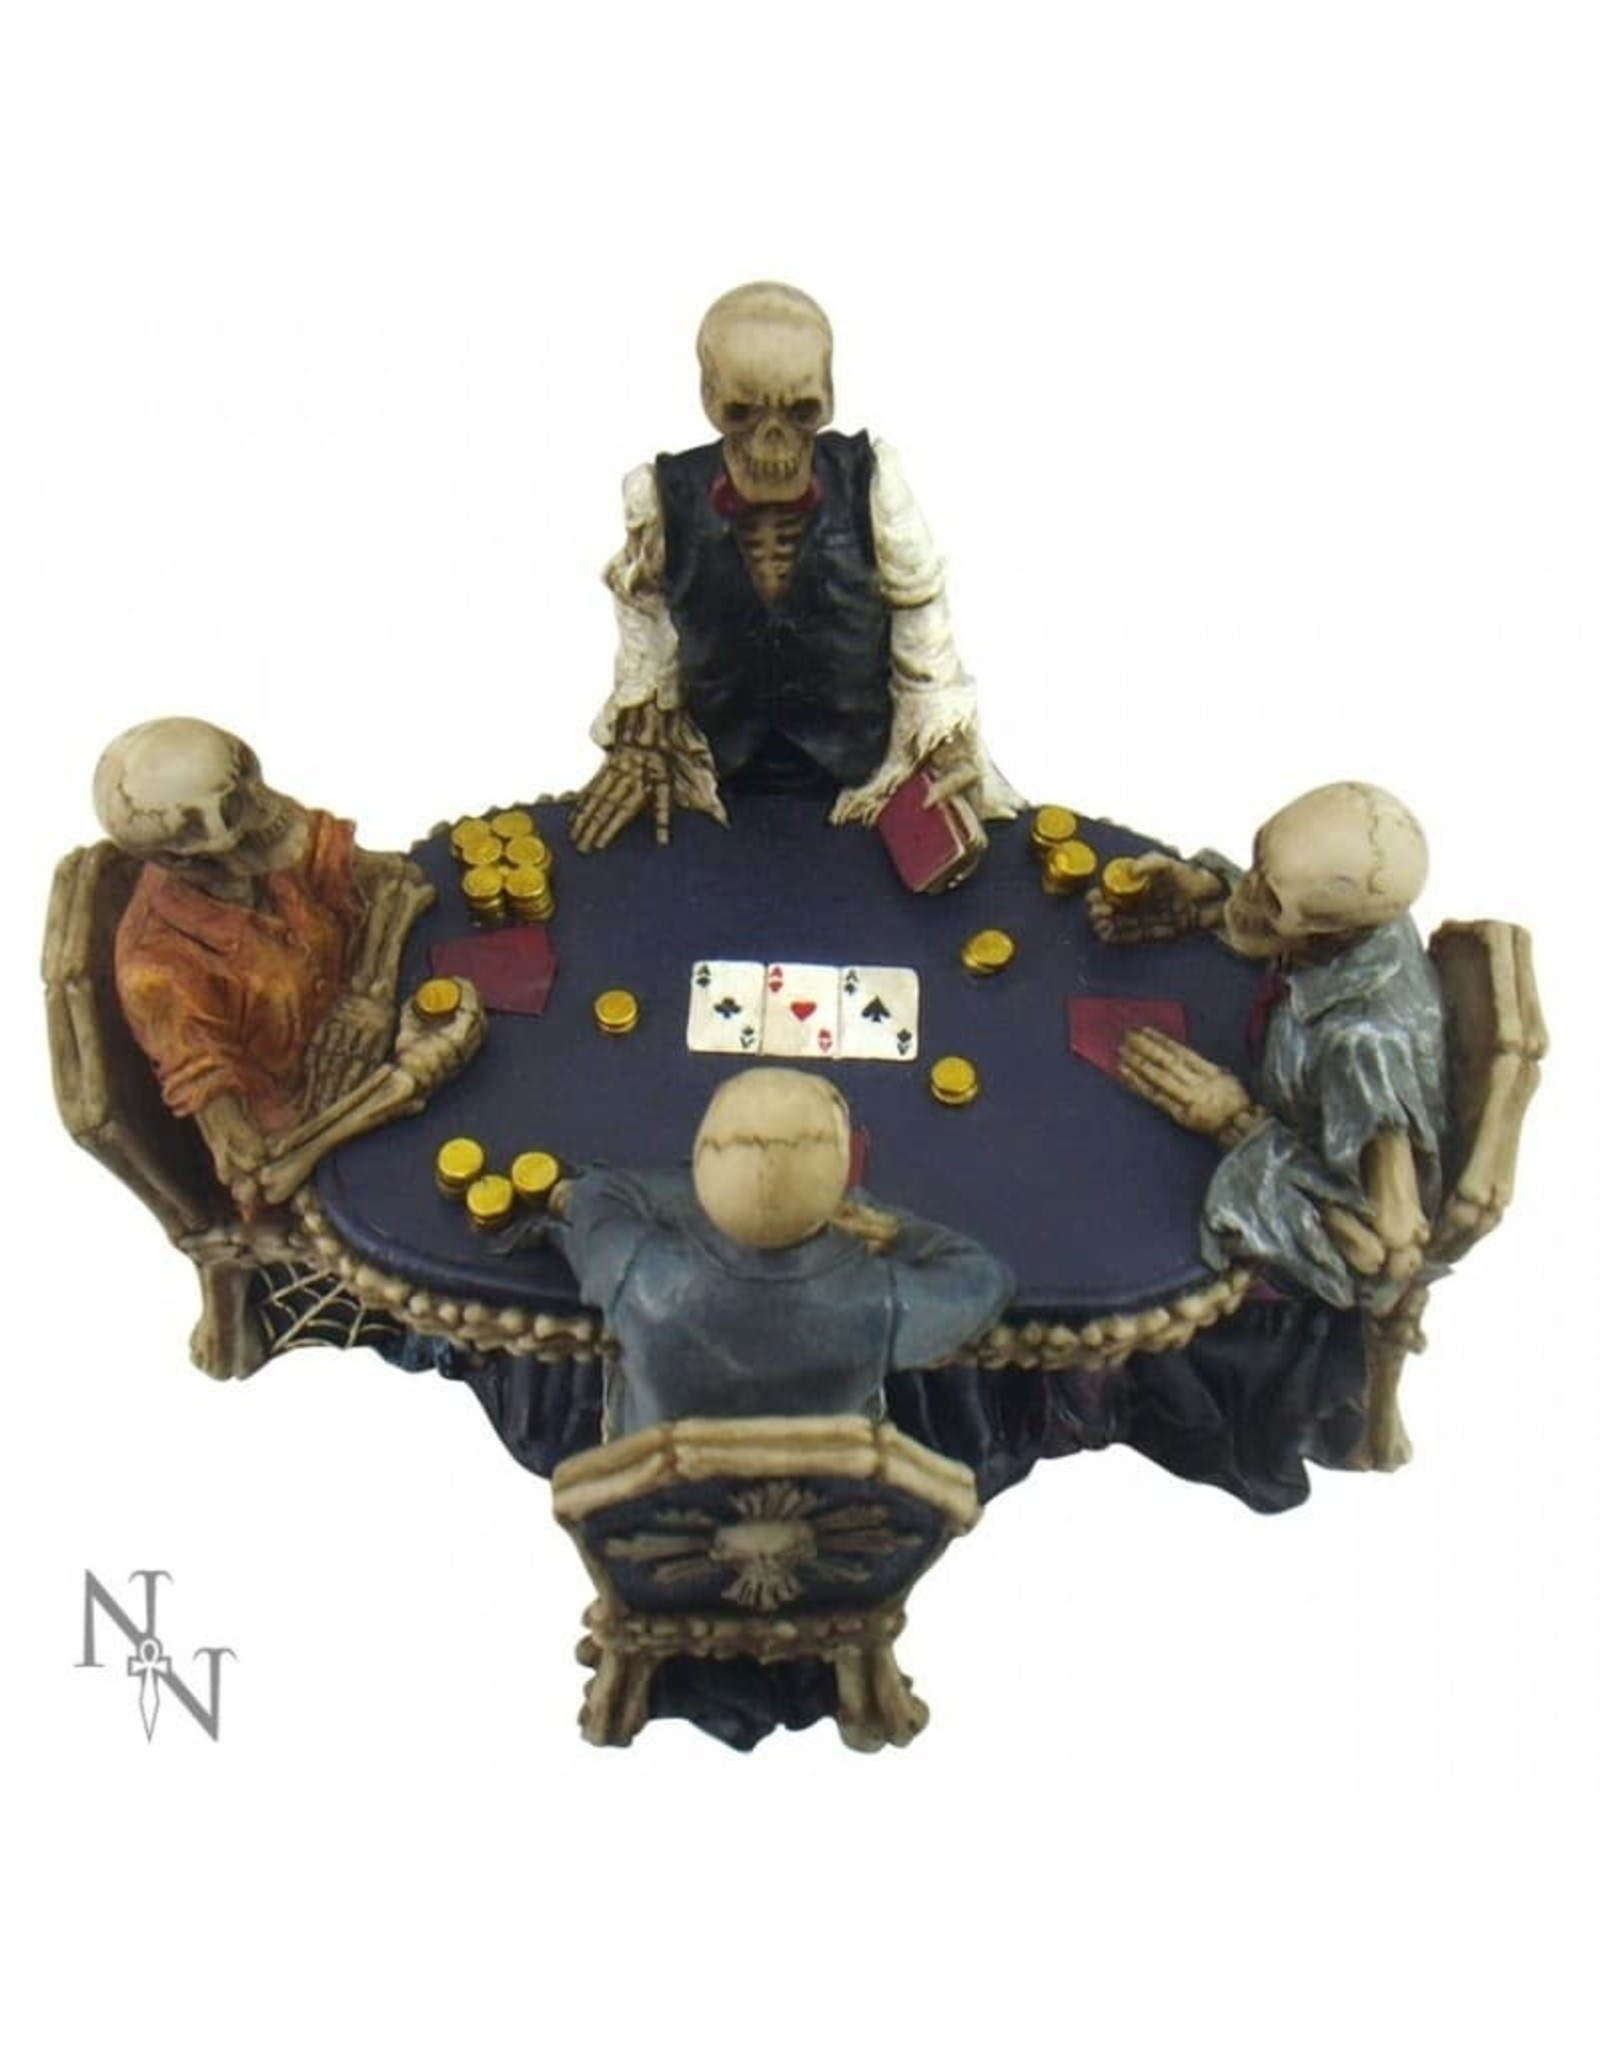 Nemesis Collectables - Poker table with Skeletons End Game Nemesis Now